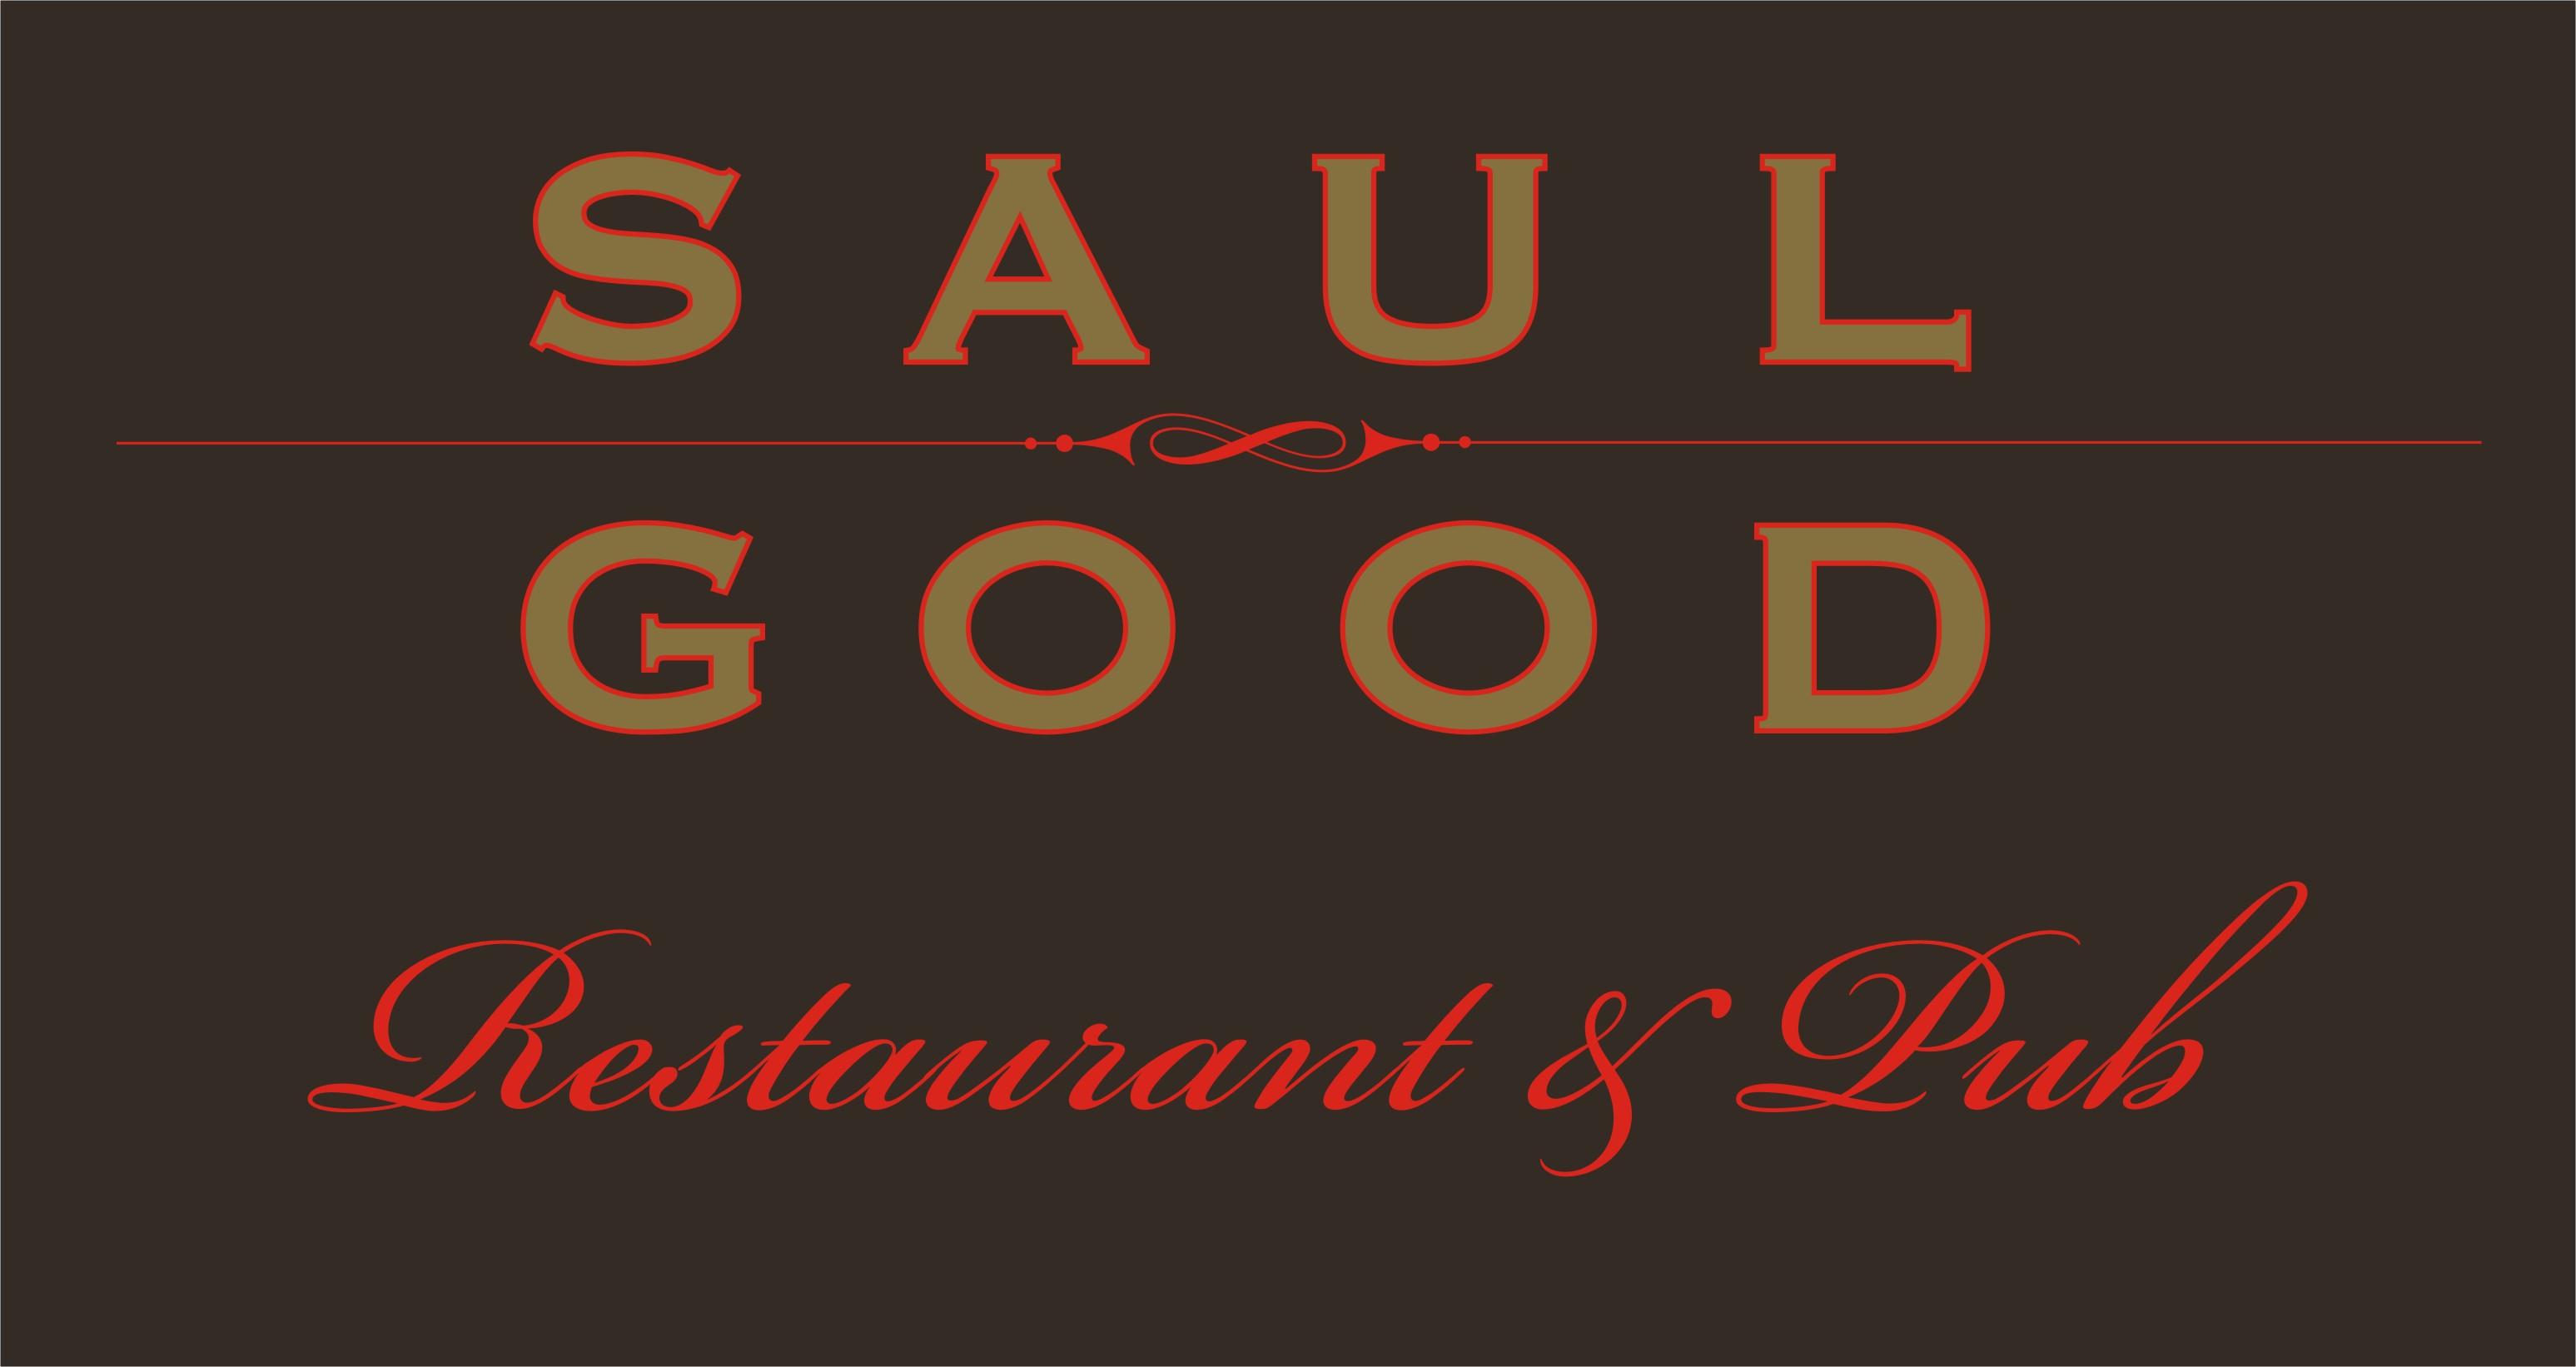 Saul Good Restaurant & Pub